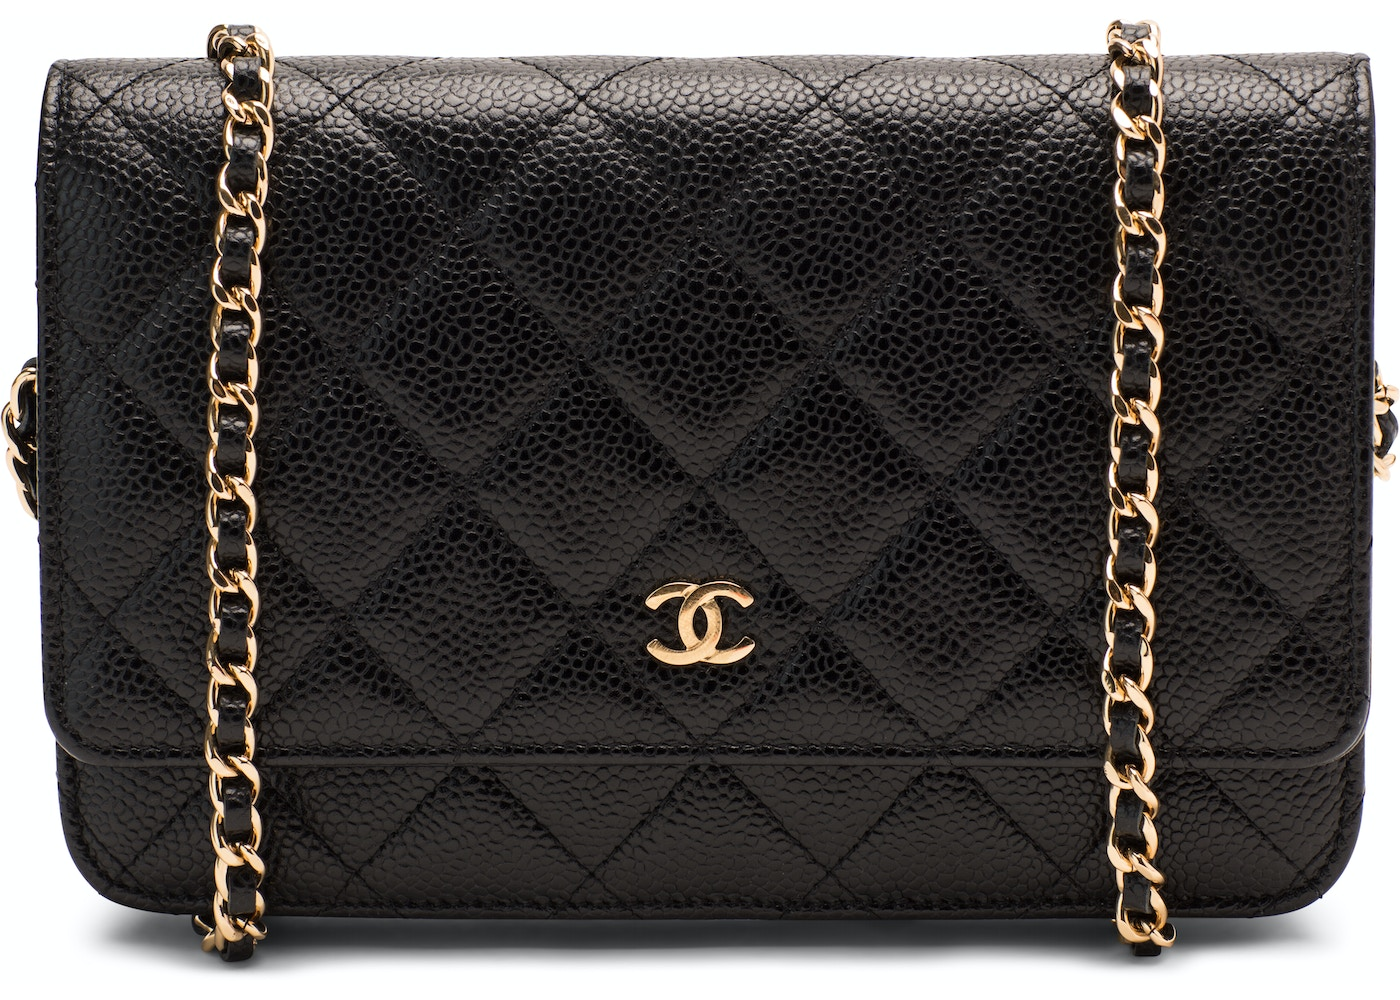 527cee47b1 Buy & Sell Chanel WOC Handbags